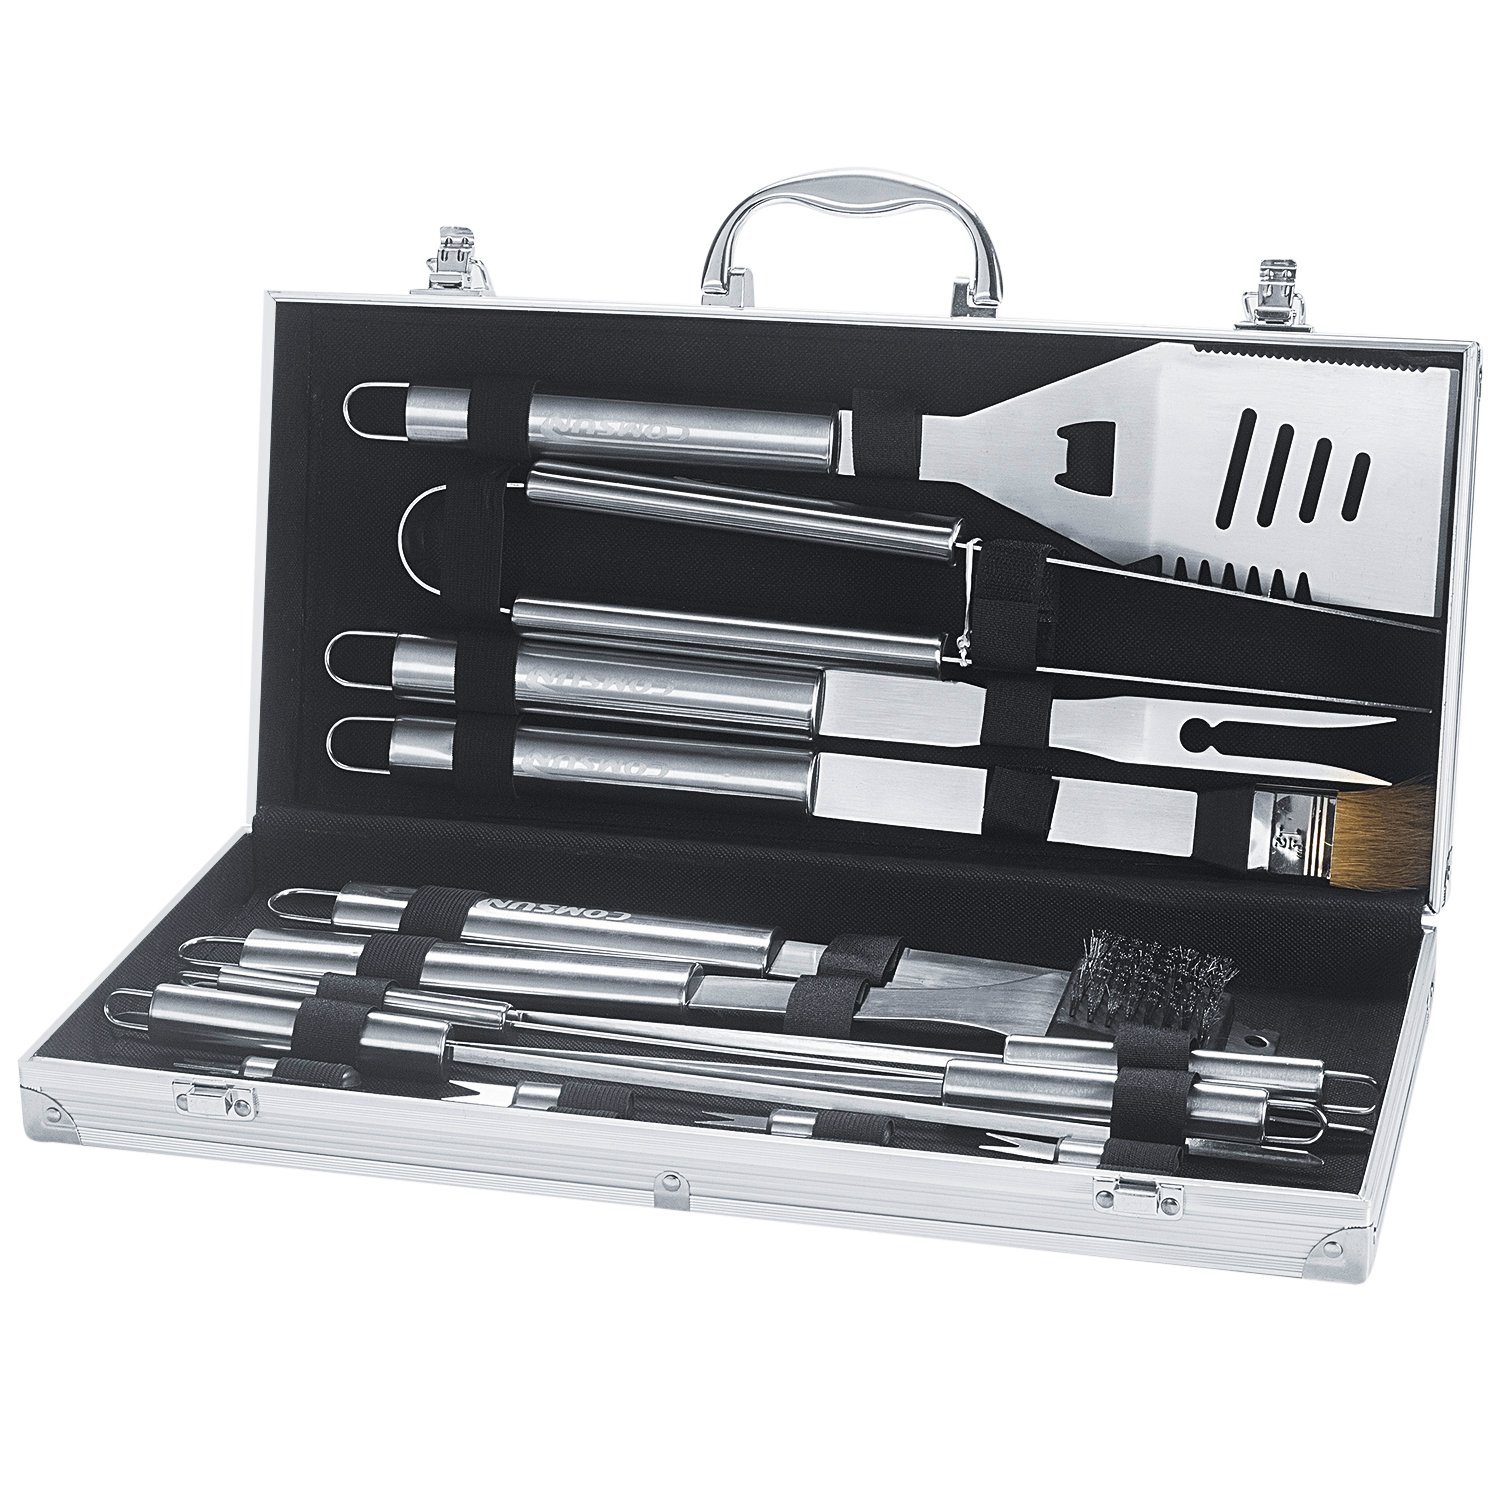 COMSUN Grill Accessories, 18 Piece Stainless Steel Barbecue Tools Set, with Aluminum Storage Case for Outdoor Camping Grilling Utensils FBA-HOME-013